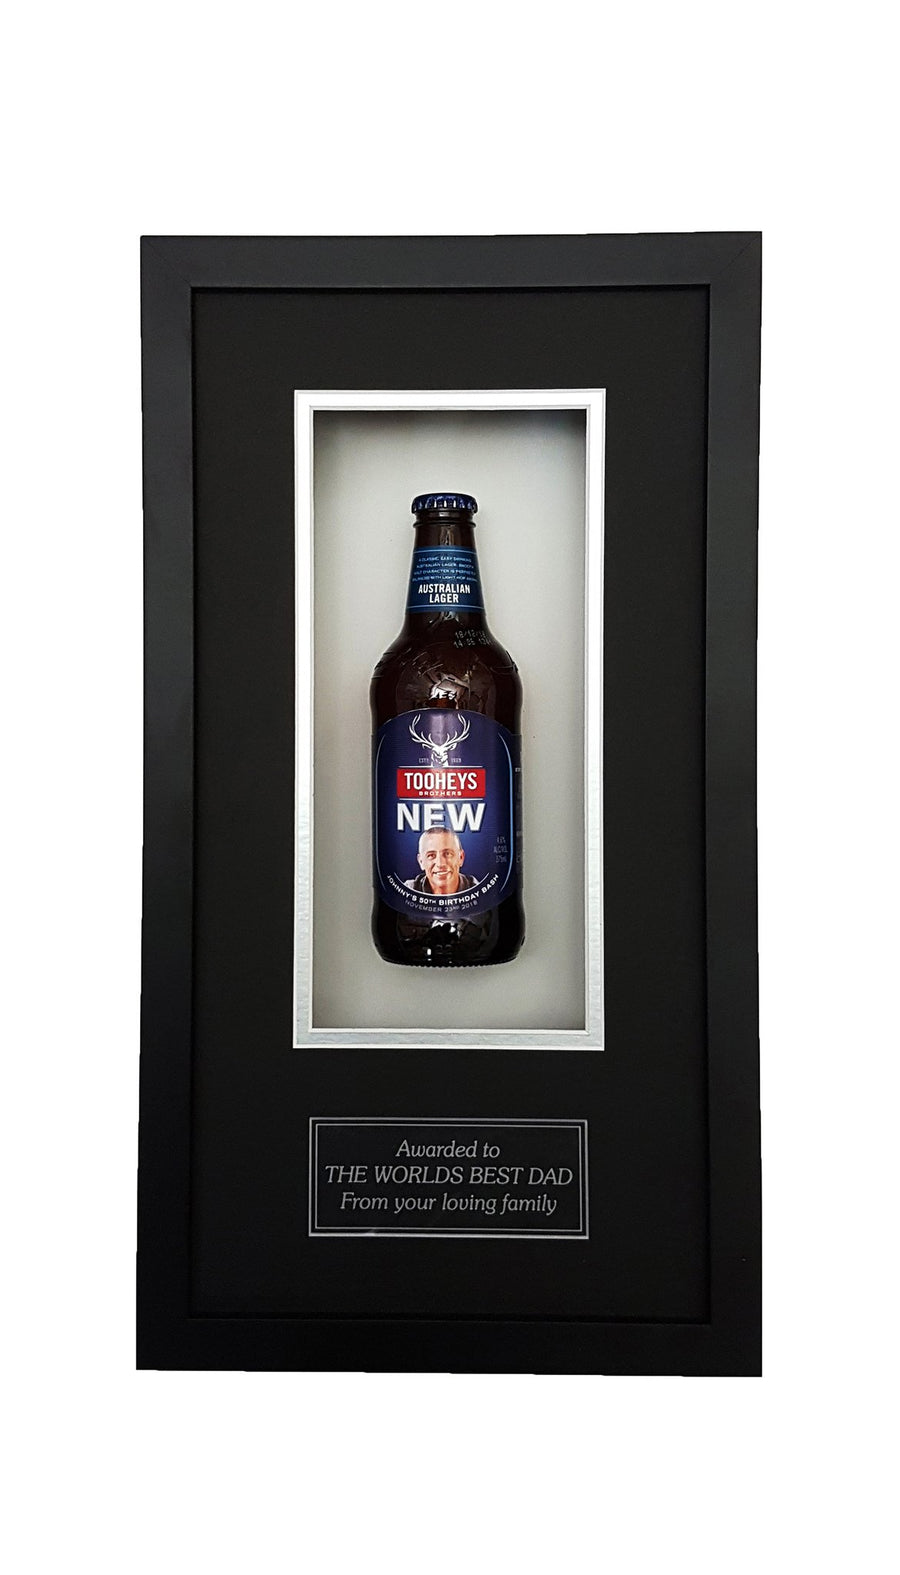 TOOHEYS NEW Framed Beer Bottle (44cm x 24cm)-My Brand And Me